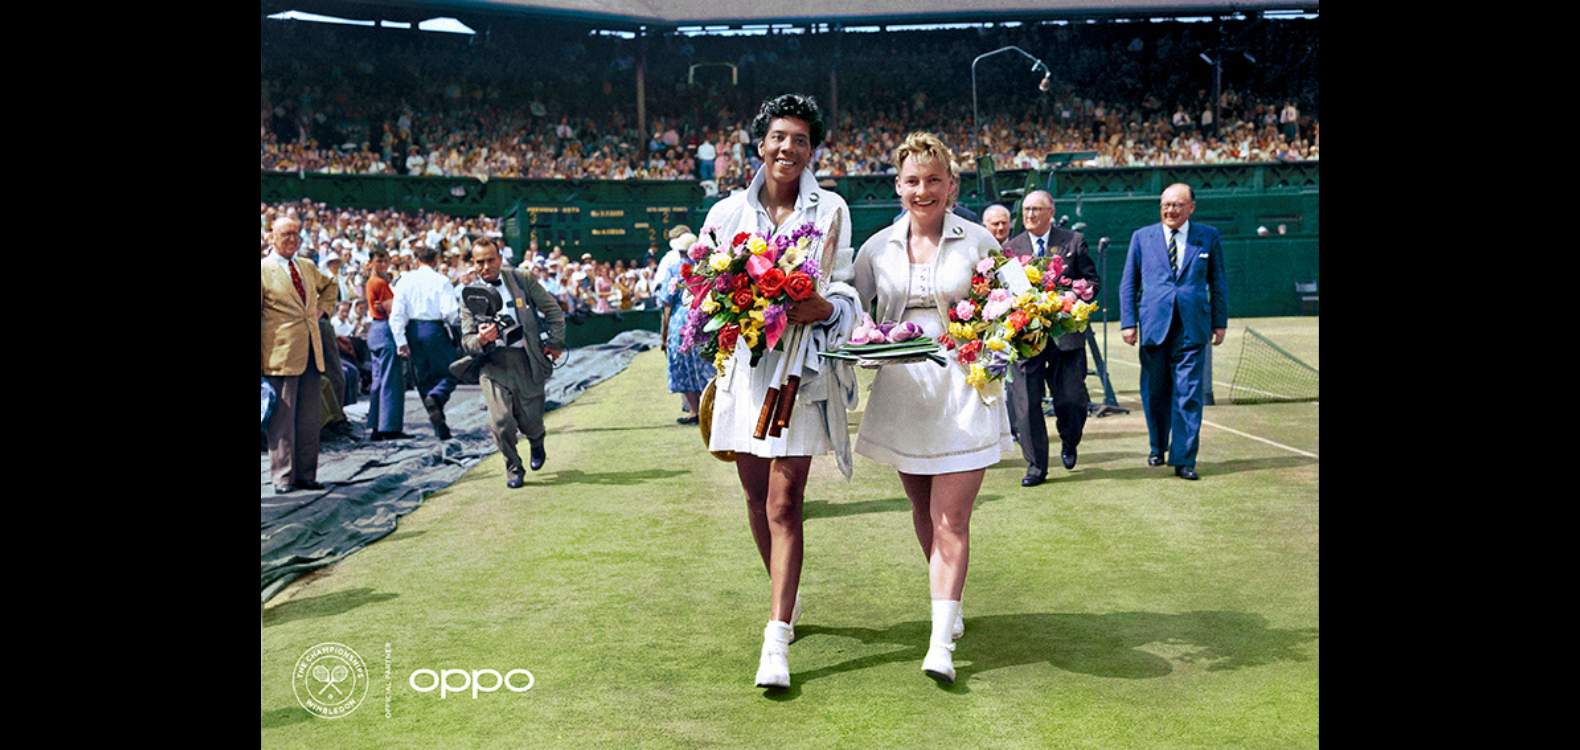 OPPO recolours historial tennis images in celebration of Wimbledon's return